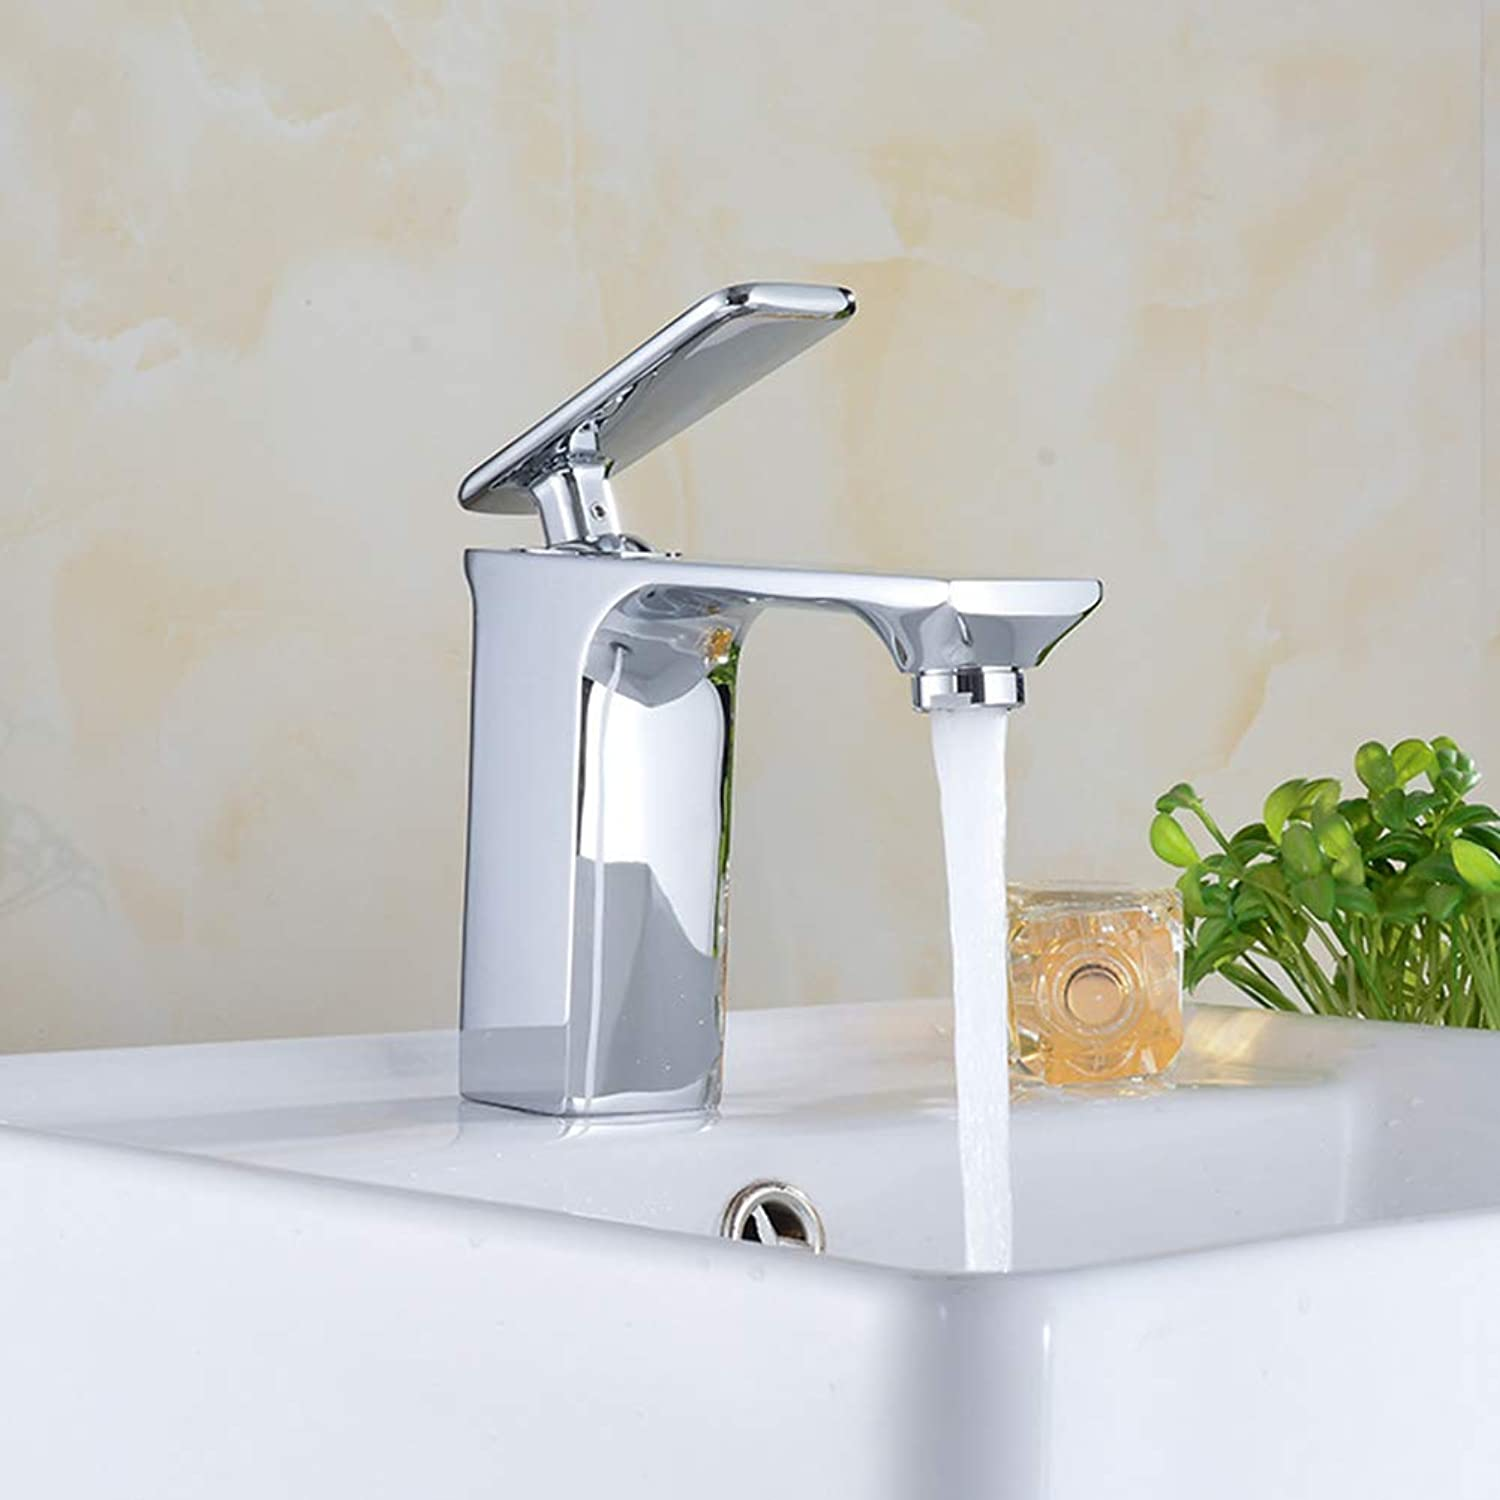 Kitchen Tap Copper-Style Faucet Single-Screw Kitchen Sink Faucet Good Build Quality Kitchen Sink Mixer Tap Easy Cleaning and Easy Inssizetion